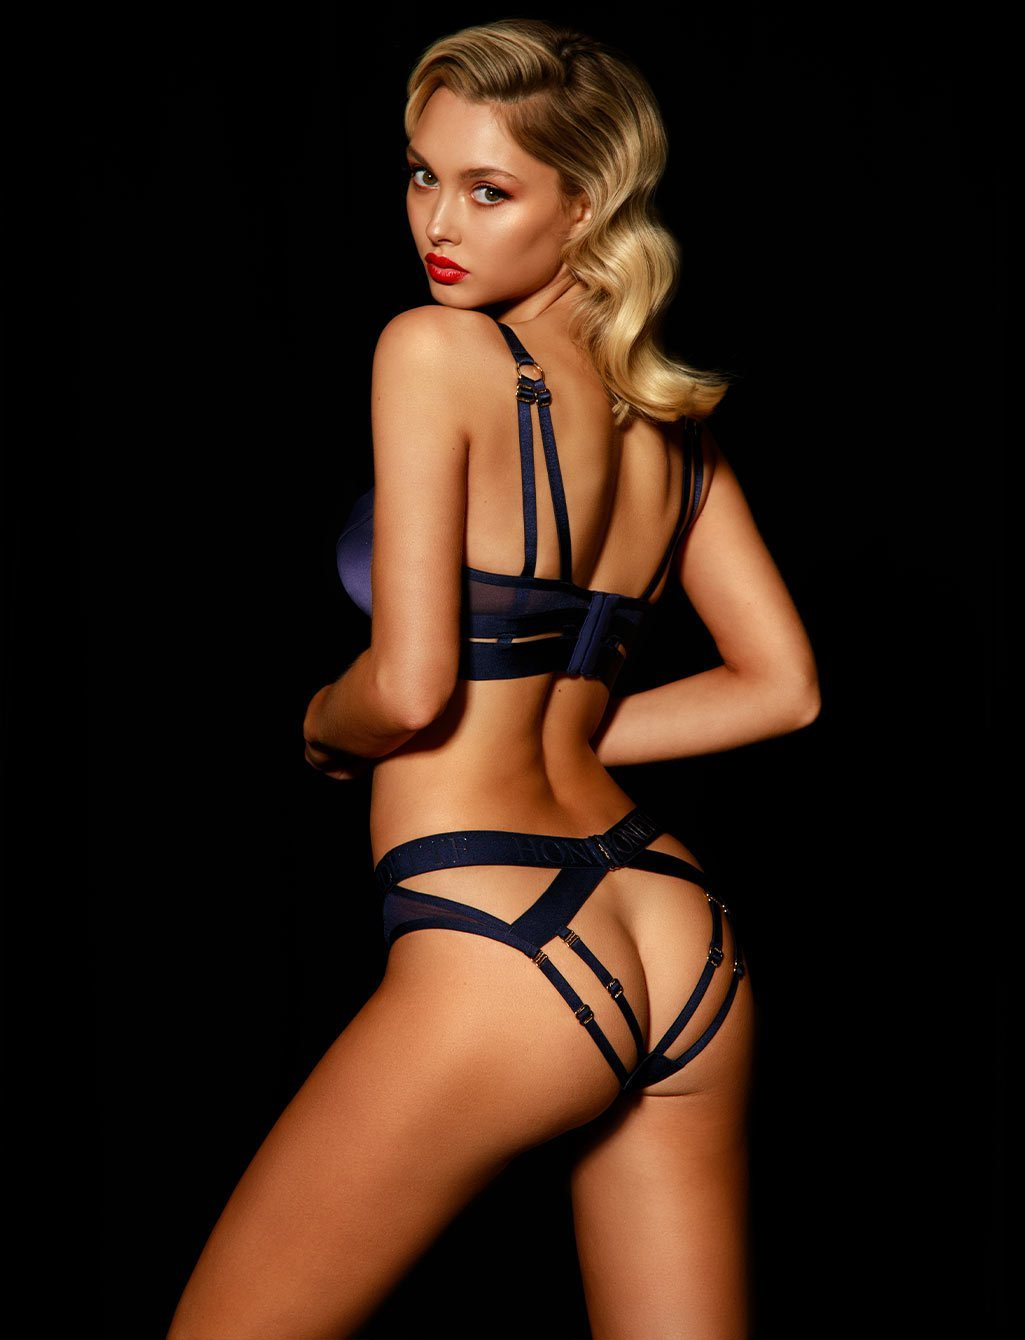 Elvis Navy Shape Wear Lingerie Collection | Shop Lingerie Honey Birdette